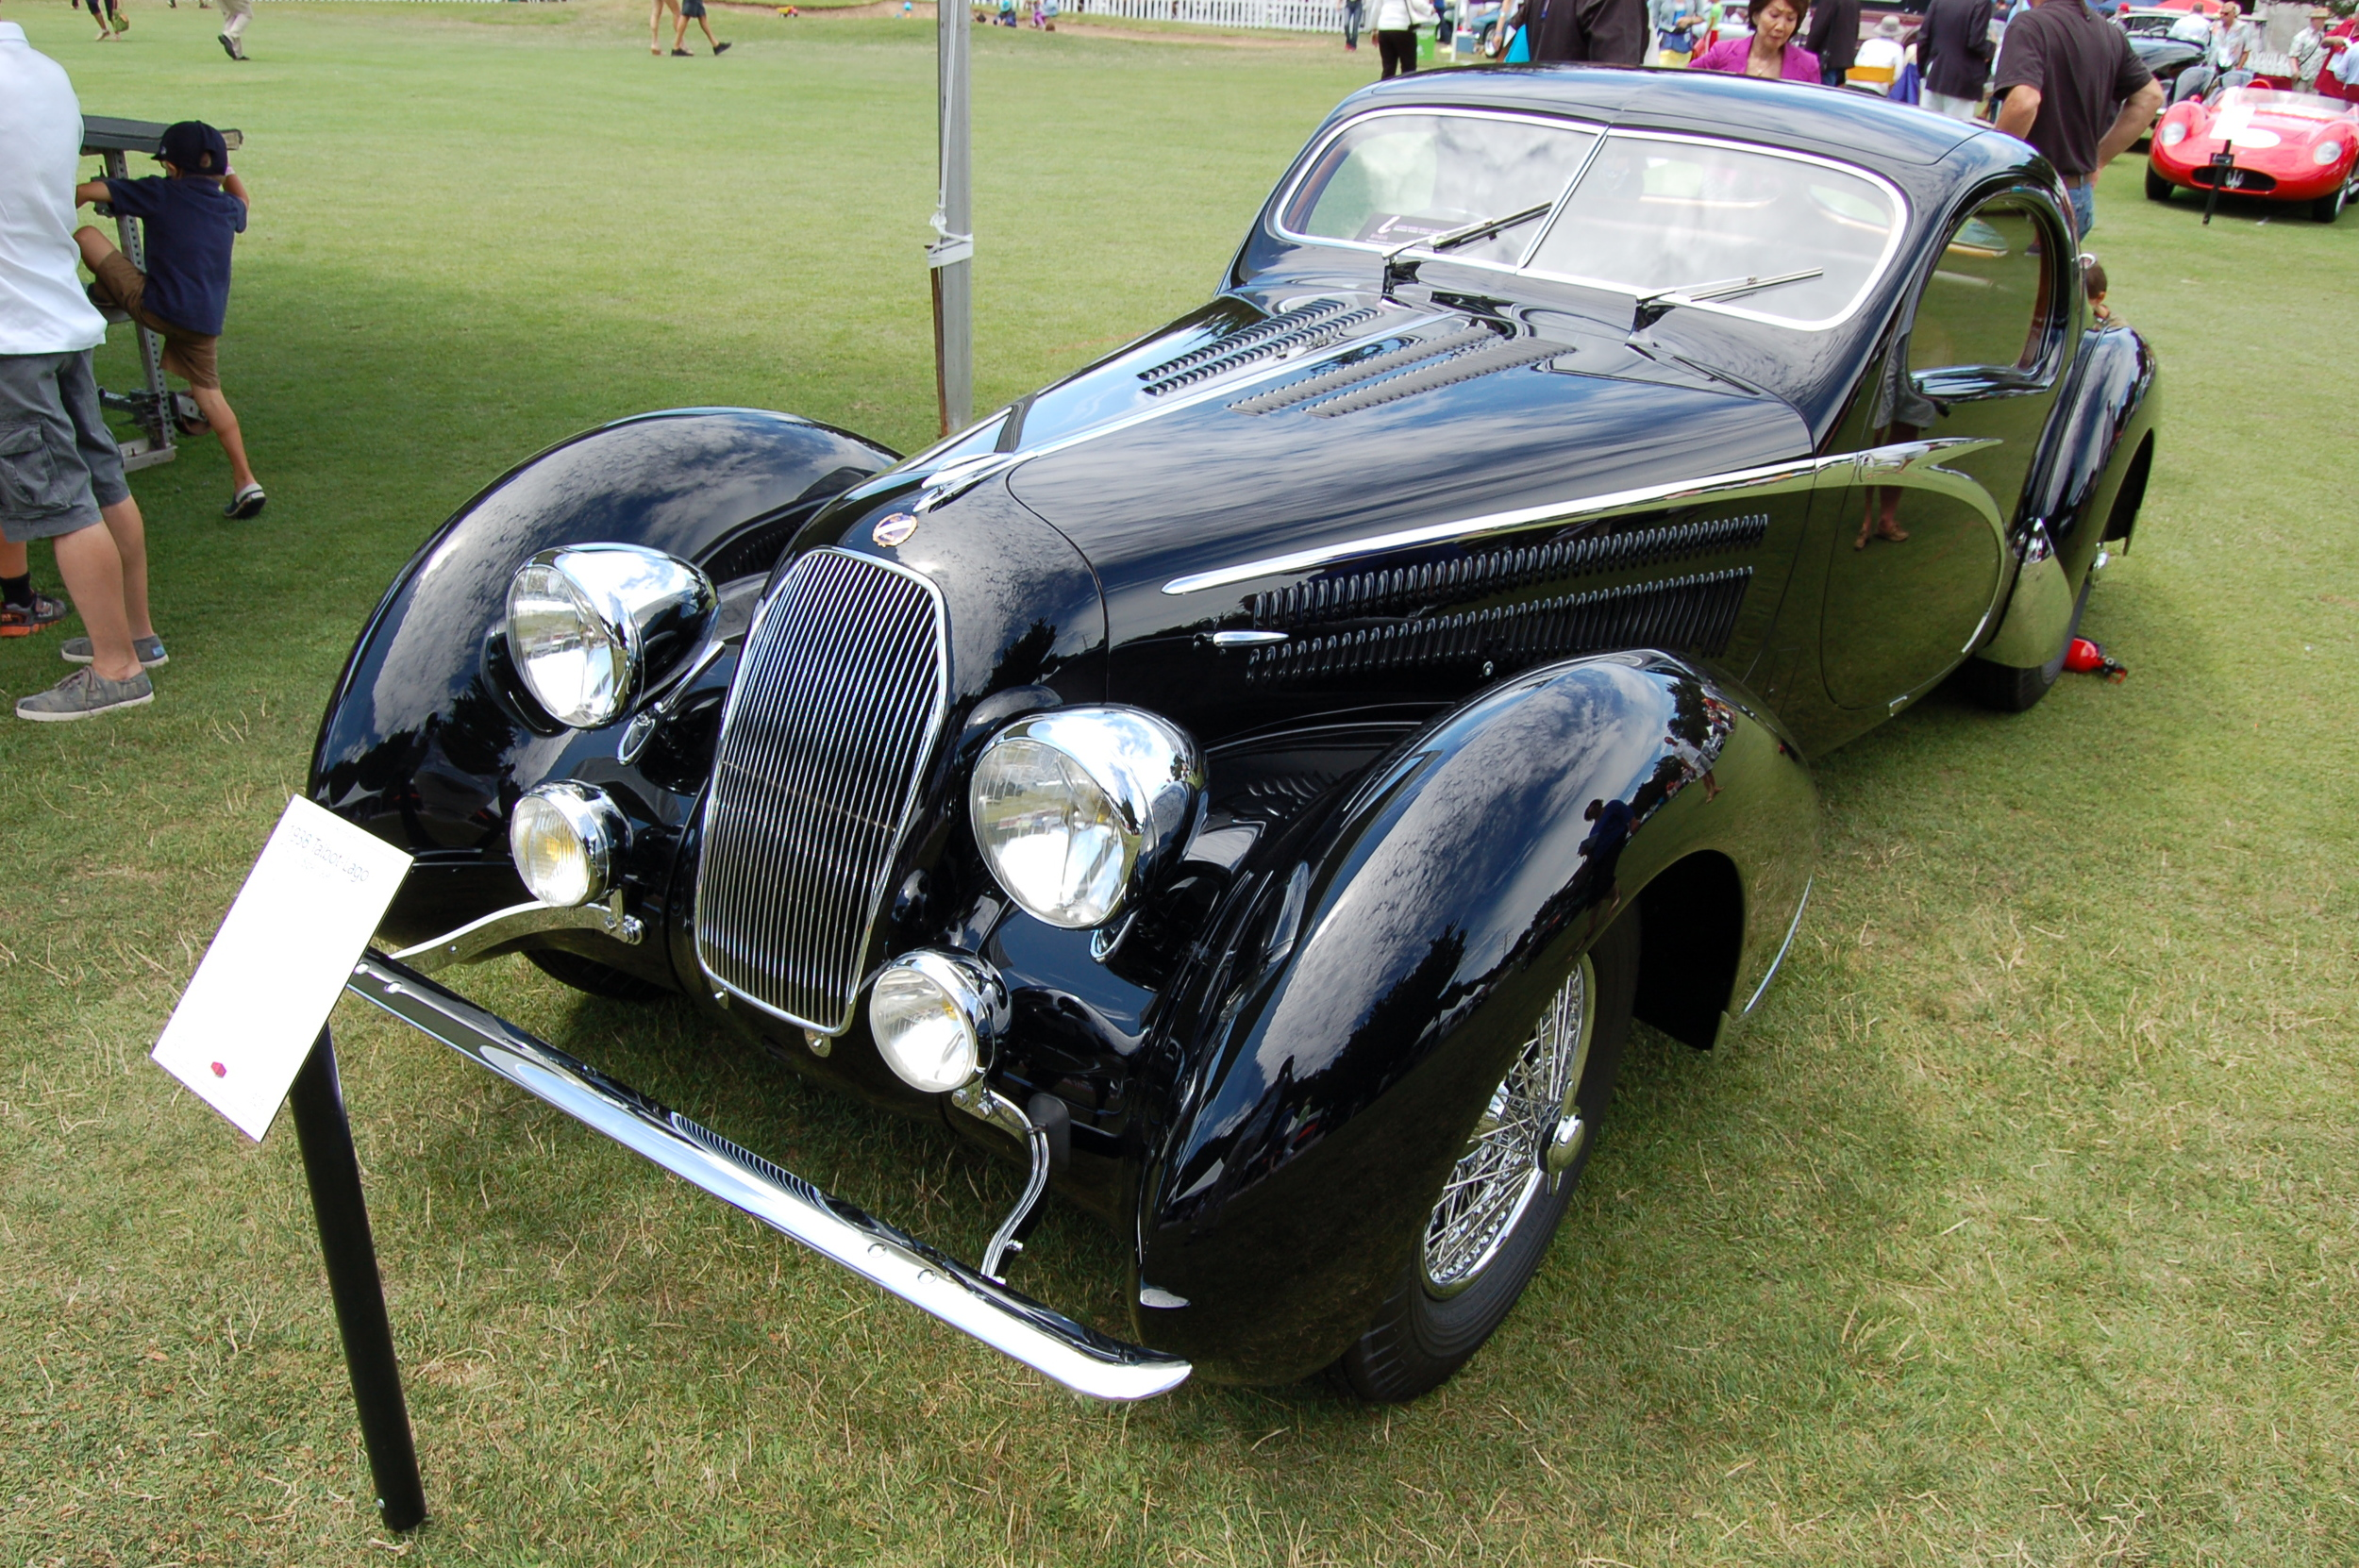 The 1938 Talbot-Lago T150-C Speciale Teardrop Coupe by Figoni et Falaschi that won 2014 Best of Show.